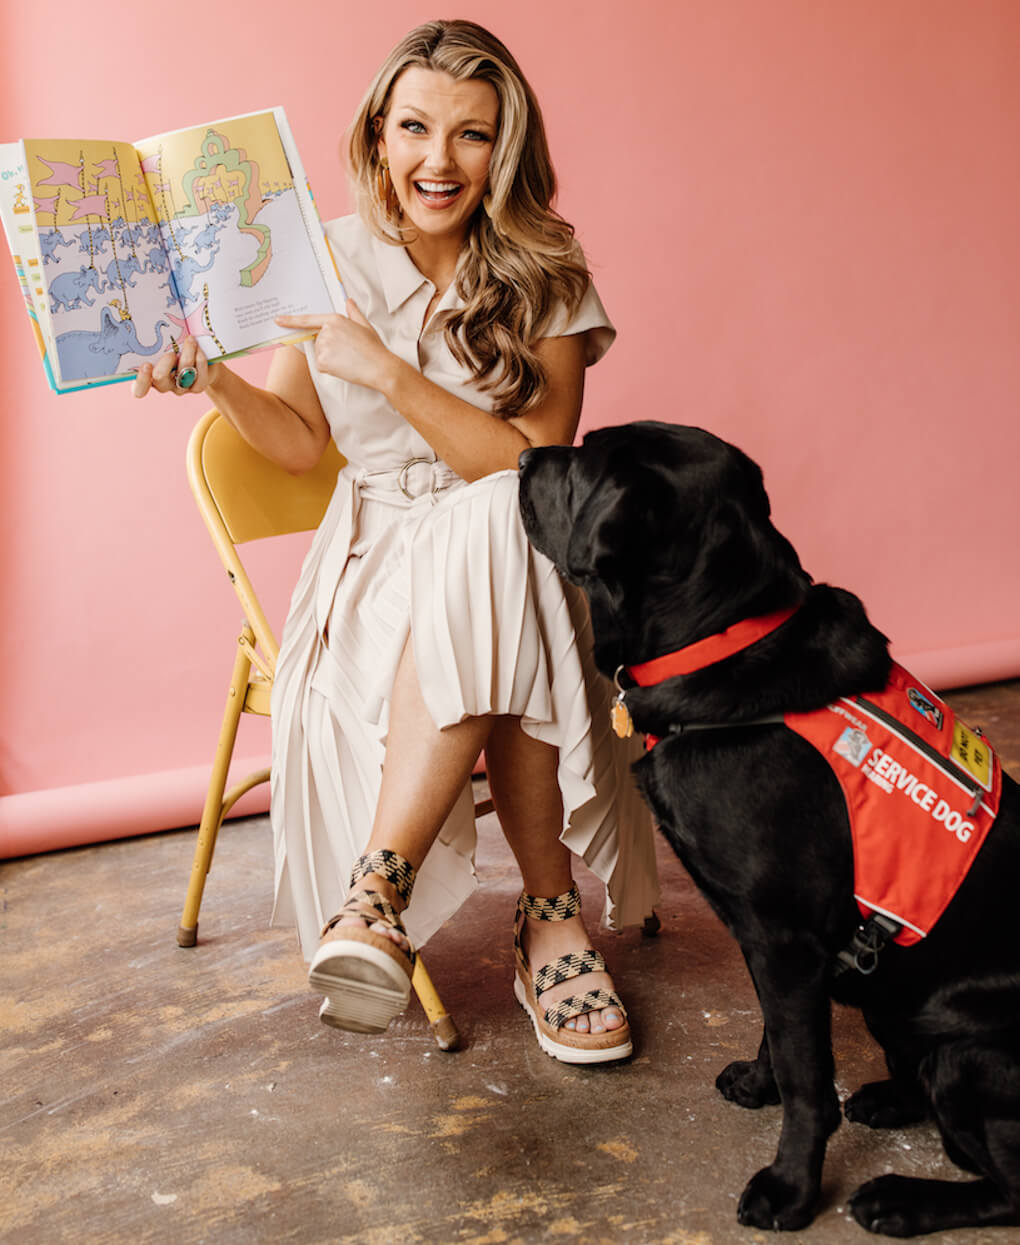 Emma Faye Rudkin is former Ms. San Antonio and Founder and Executive Director of Aid the Silent. She works alongside her hearing dog, Hank. Photo Credit: Devin Travieso.